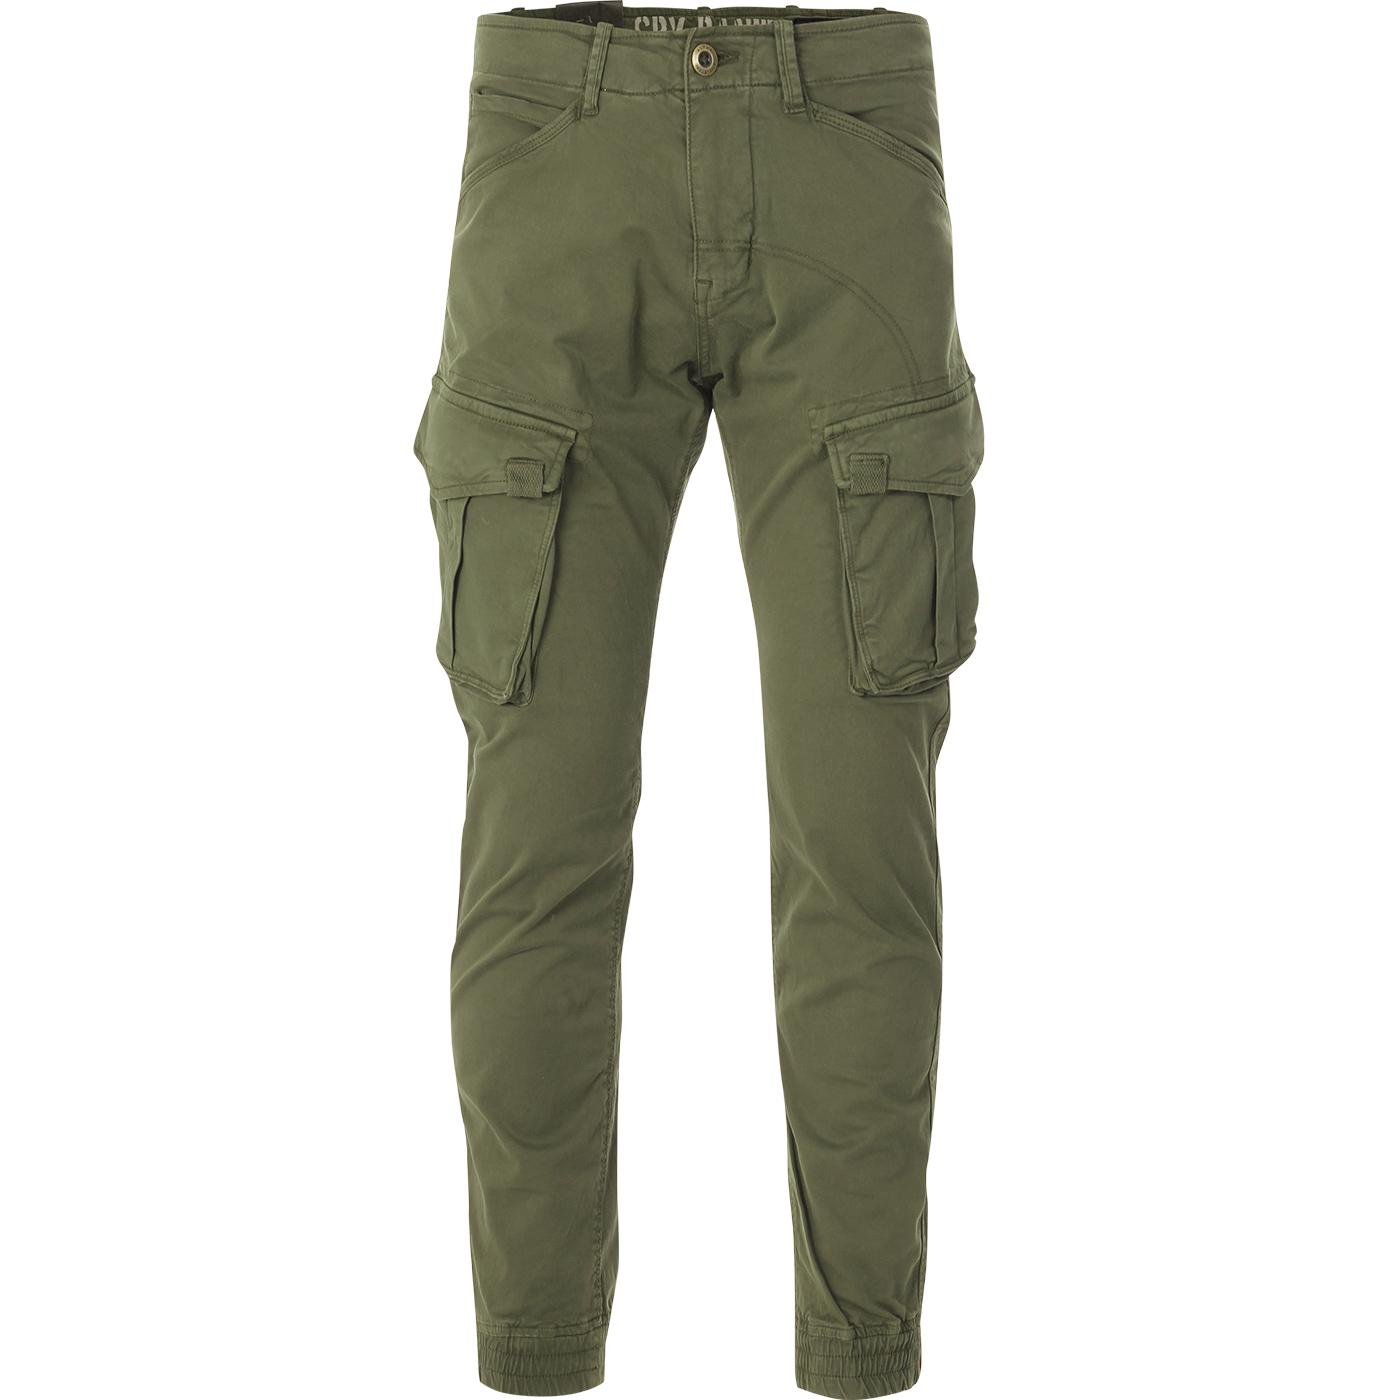 ALPHA INDUSTRIES Tapered Fit Cargo Pants (DO)